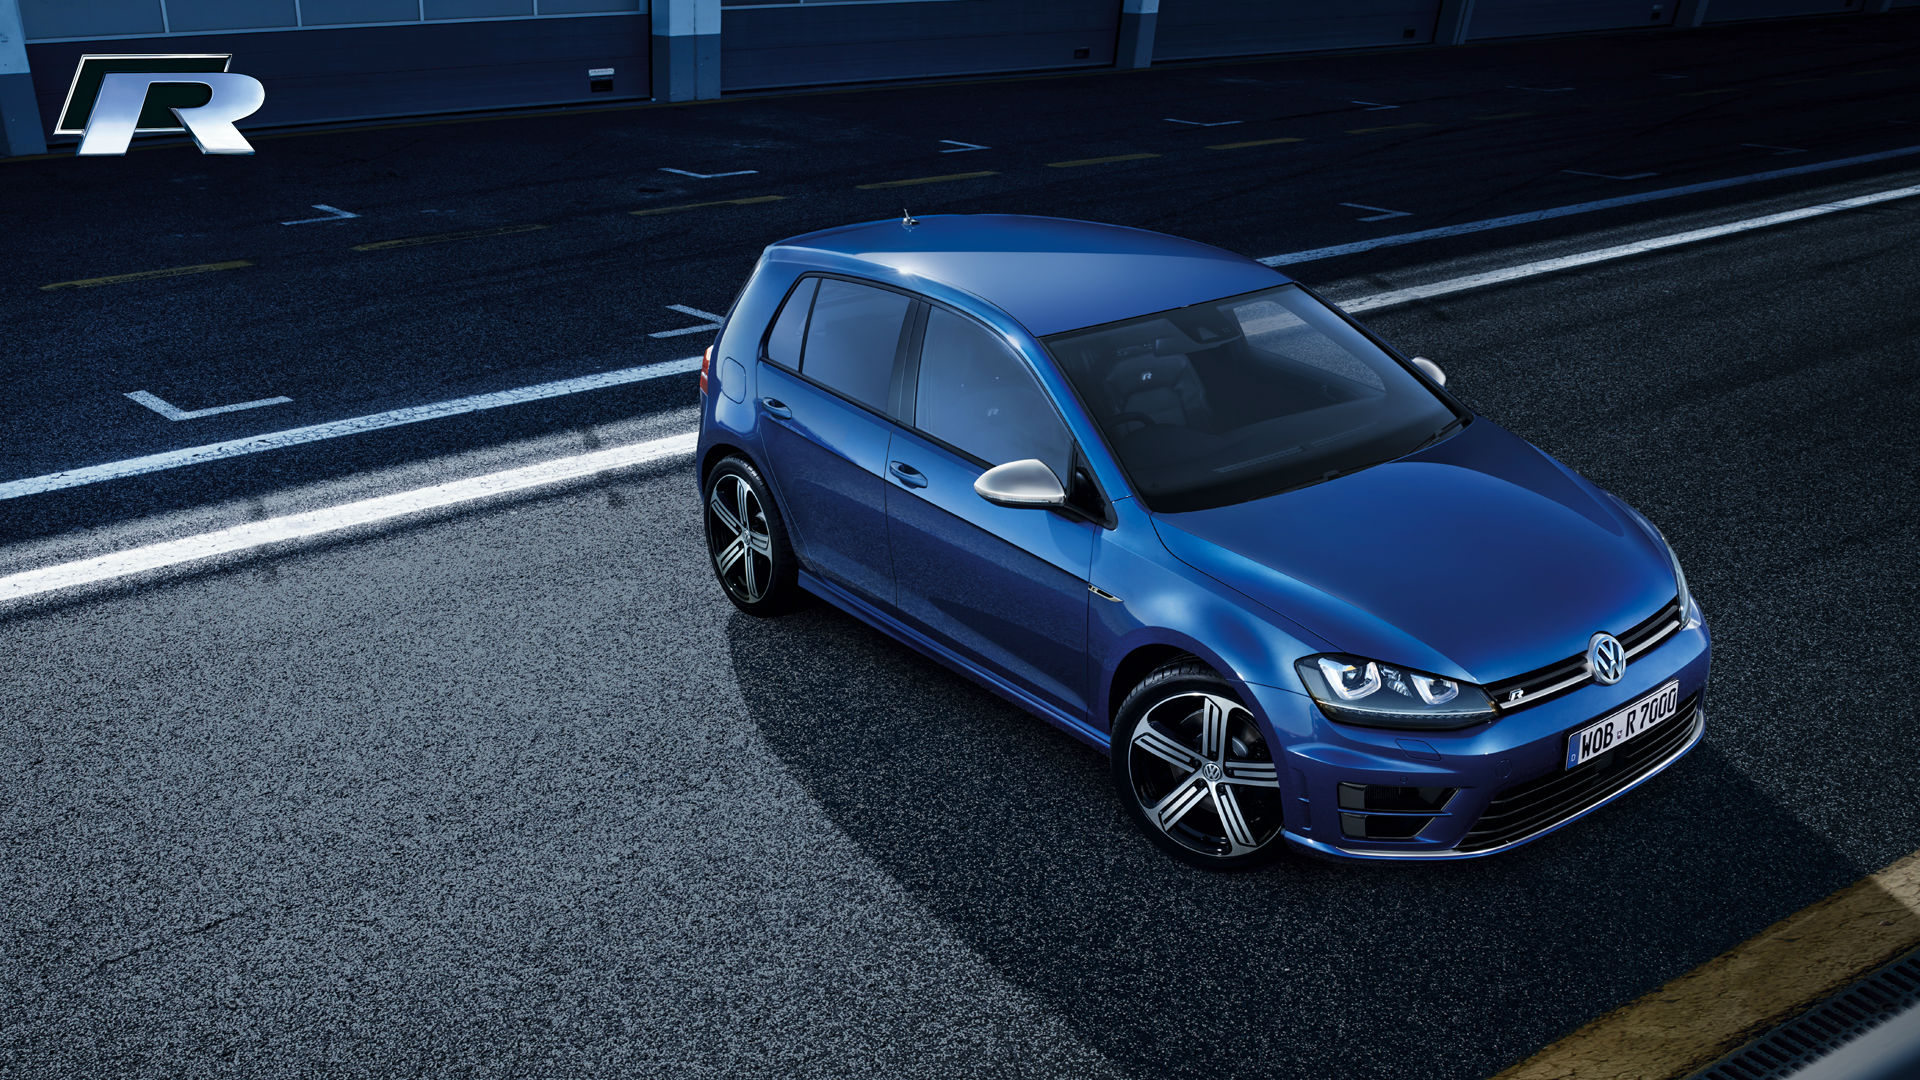 48 Golf R Wallpaper On Wallpapersafari